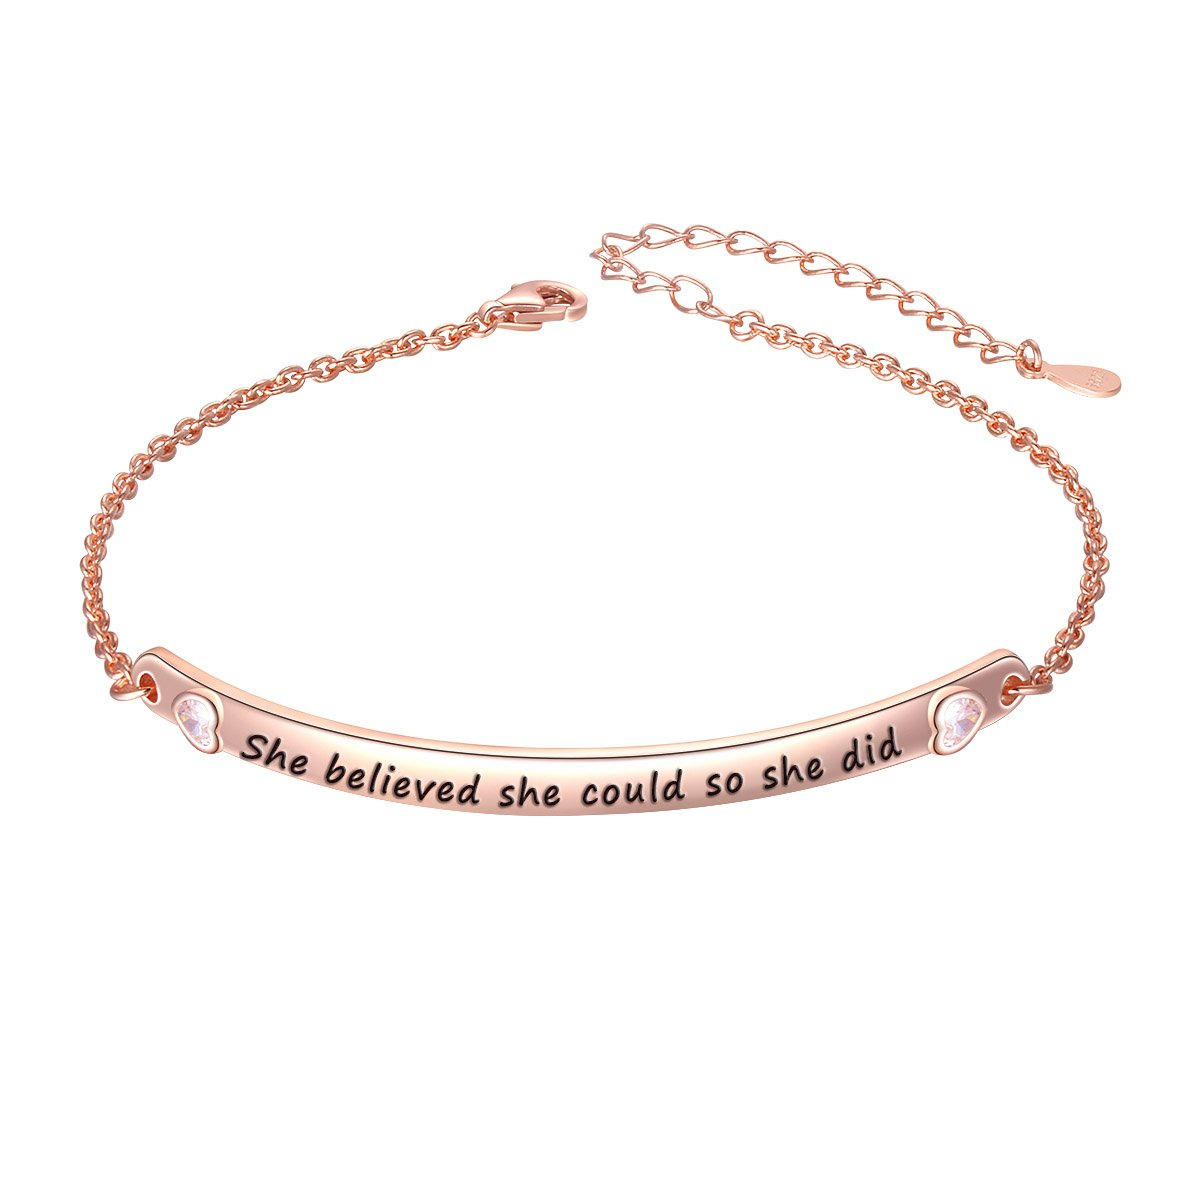 """SILVER MOUNTAIN Sterling Silver Engraved Inspirational Adjustable Bracelet """"She Believed She Could So She Did"""" Gift for Her, Women, Friendship (Style 1 Rose Gold Plated)"""